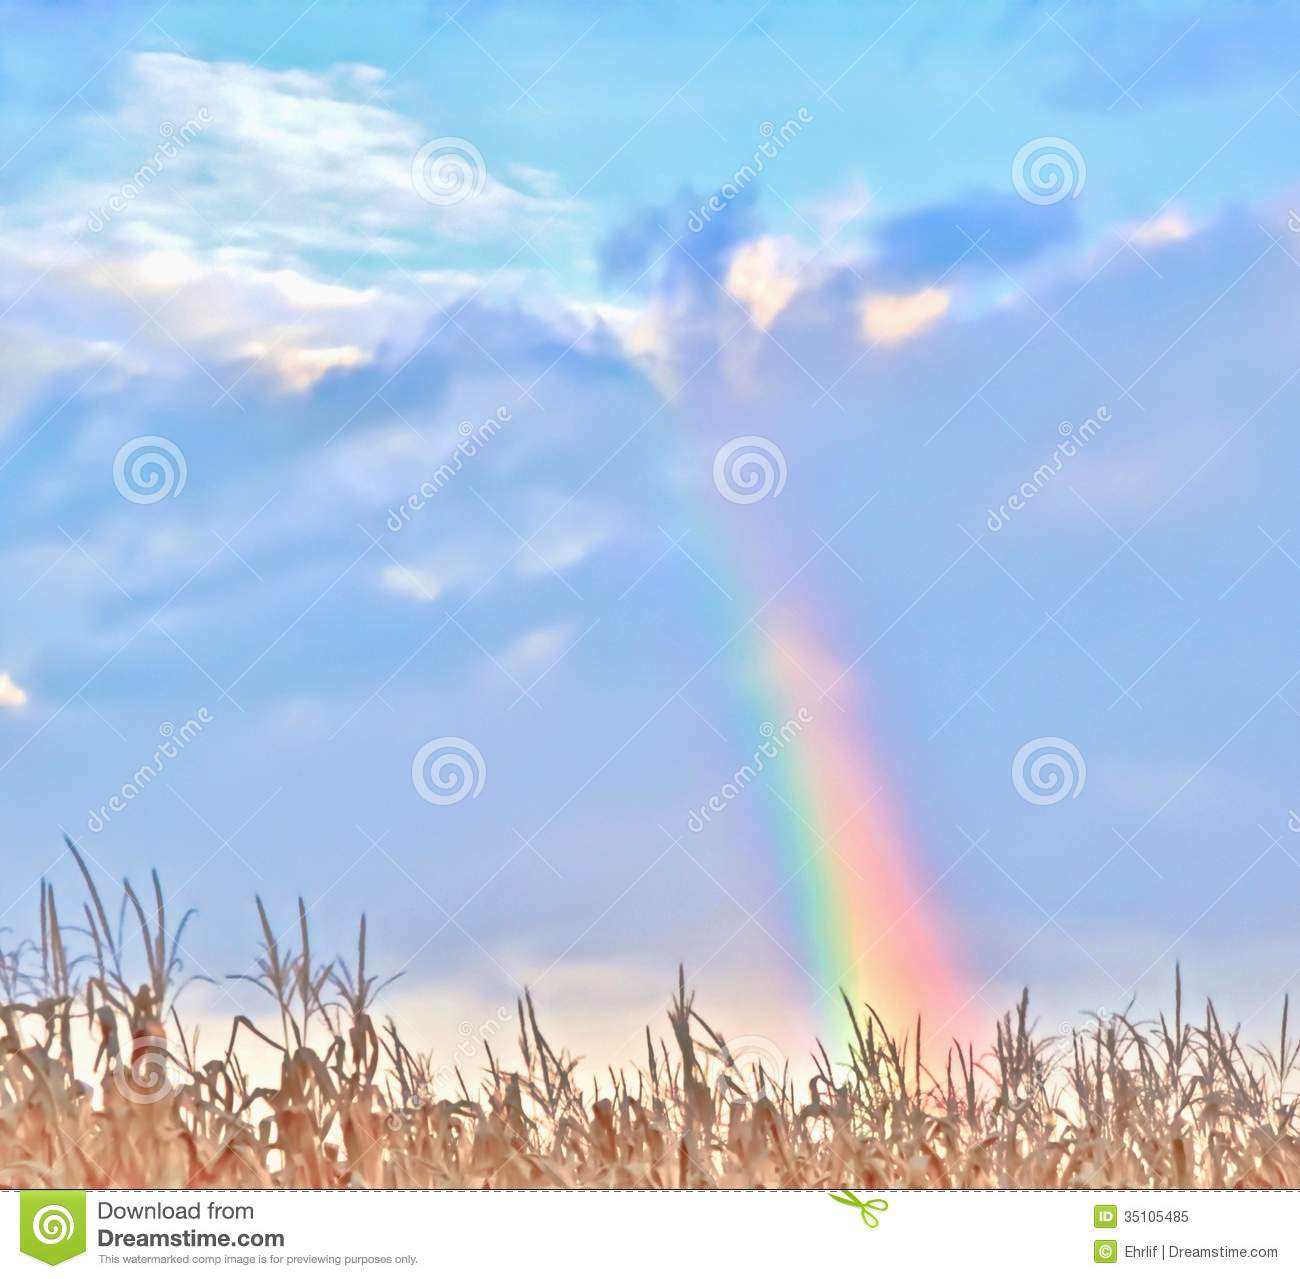 Rainbow Harvest Rainbow Harvest new pictures